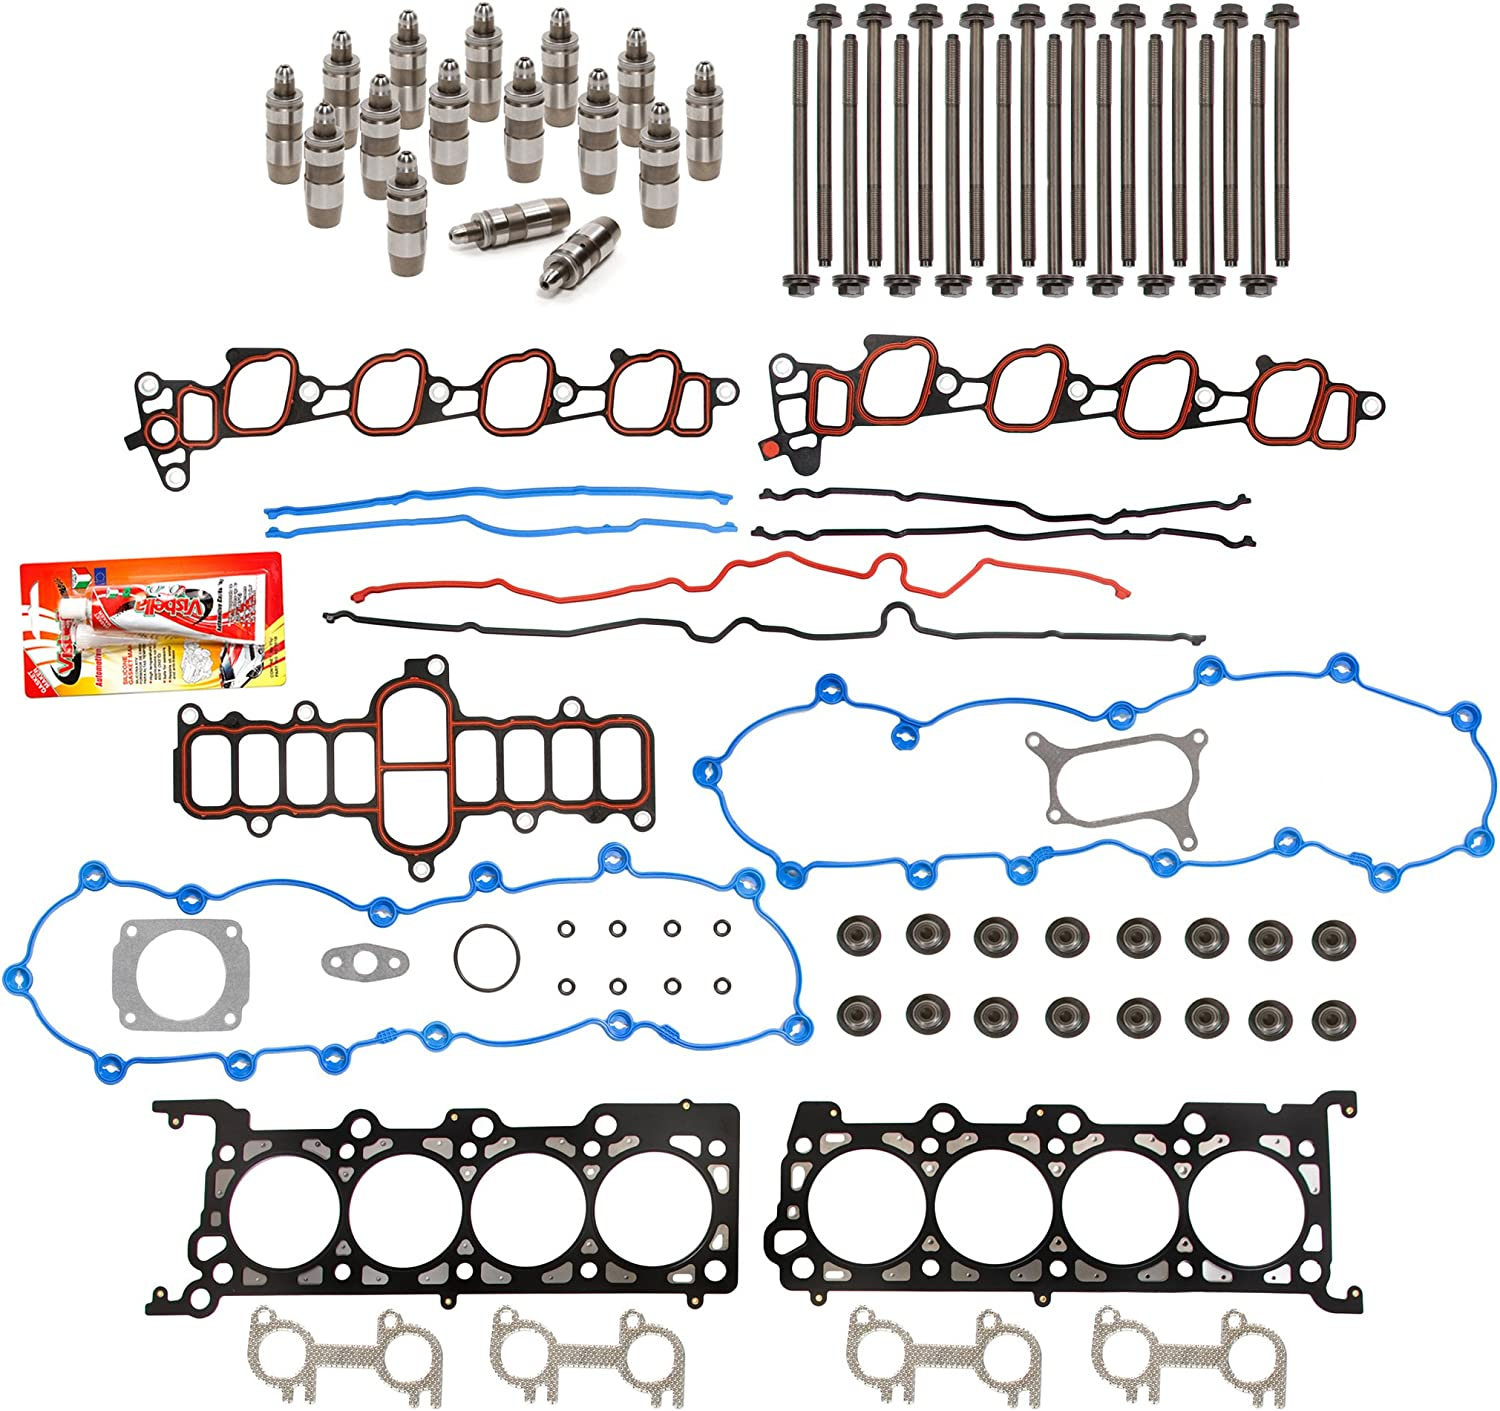 Evergreen HSHBLF8-21203 Lifter Replacement Kit Fits 97-99 Ford E Lifters F Series 4.6 SOHC 16V WINDSOR Head Gasket Set Head Bolts